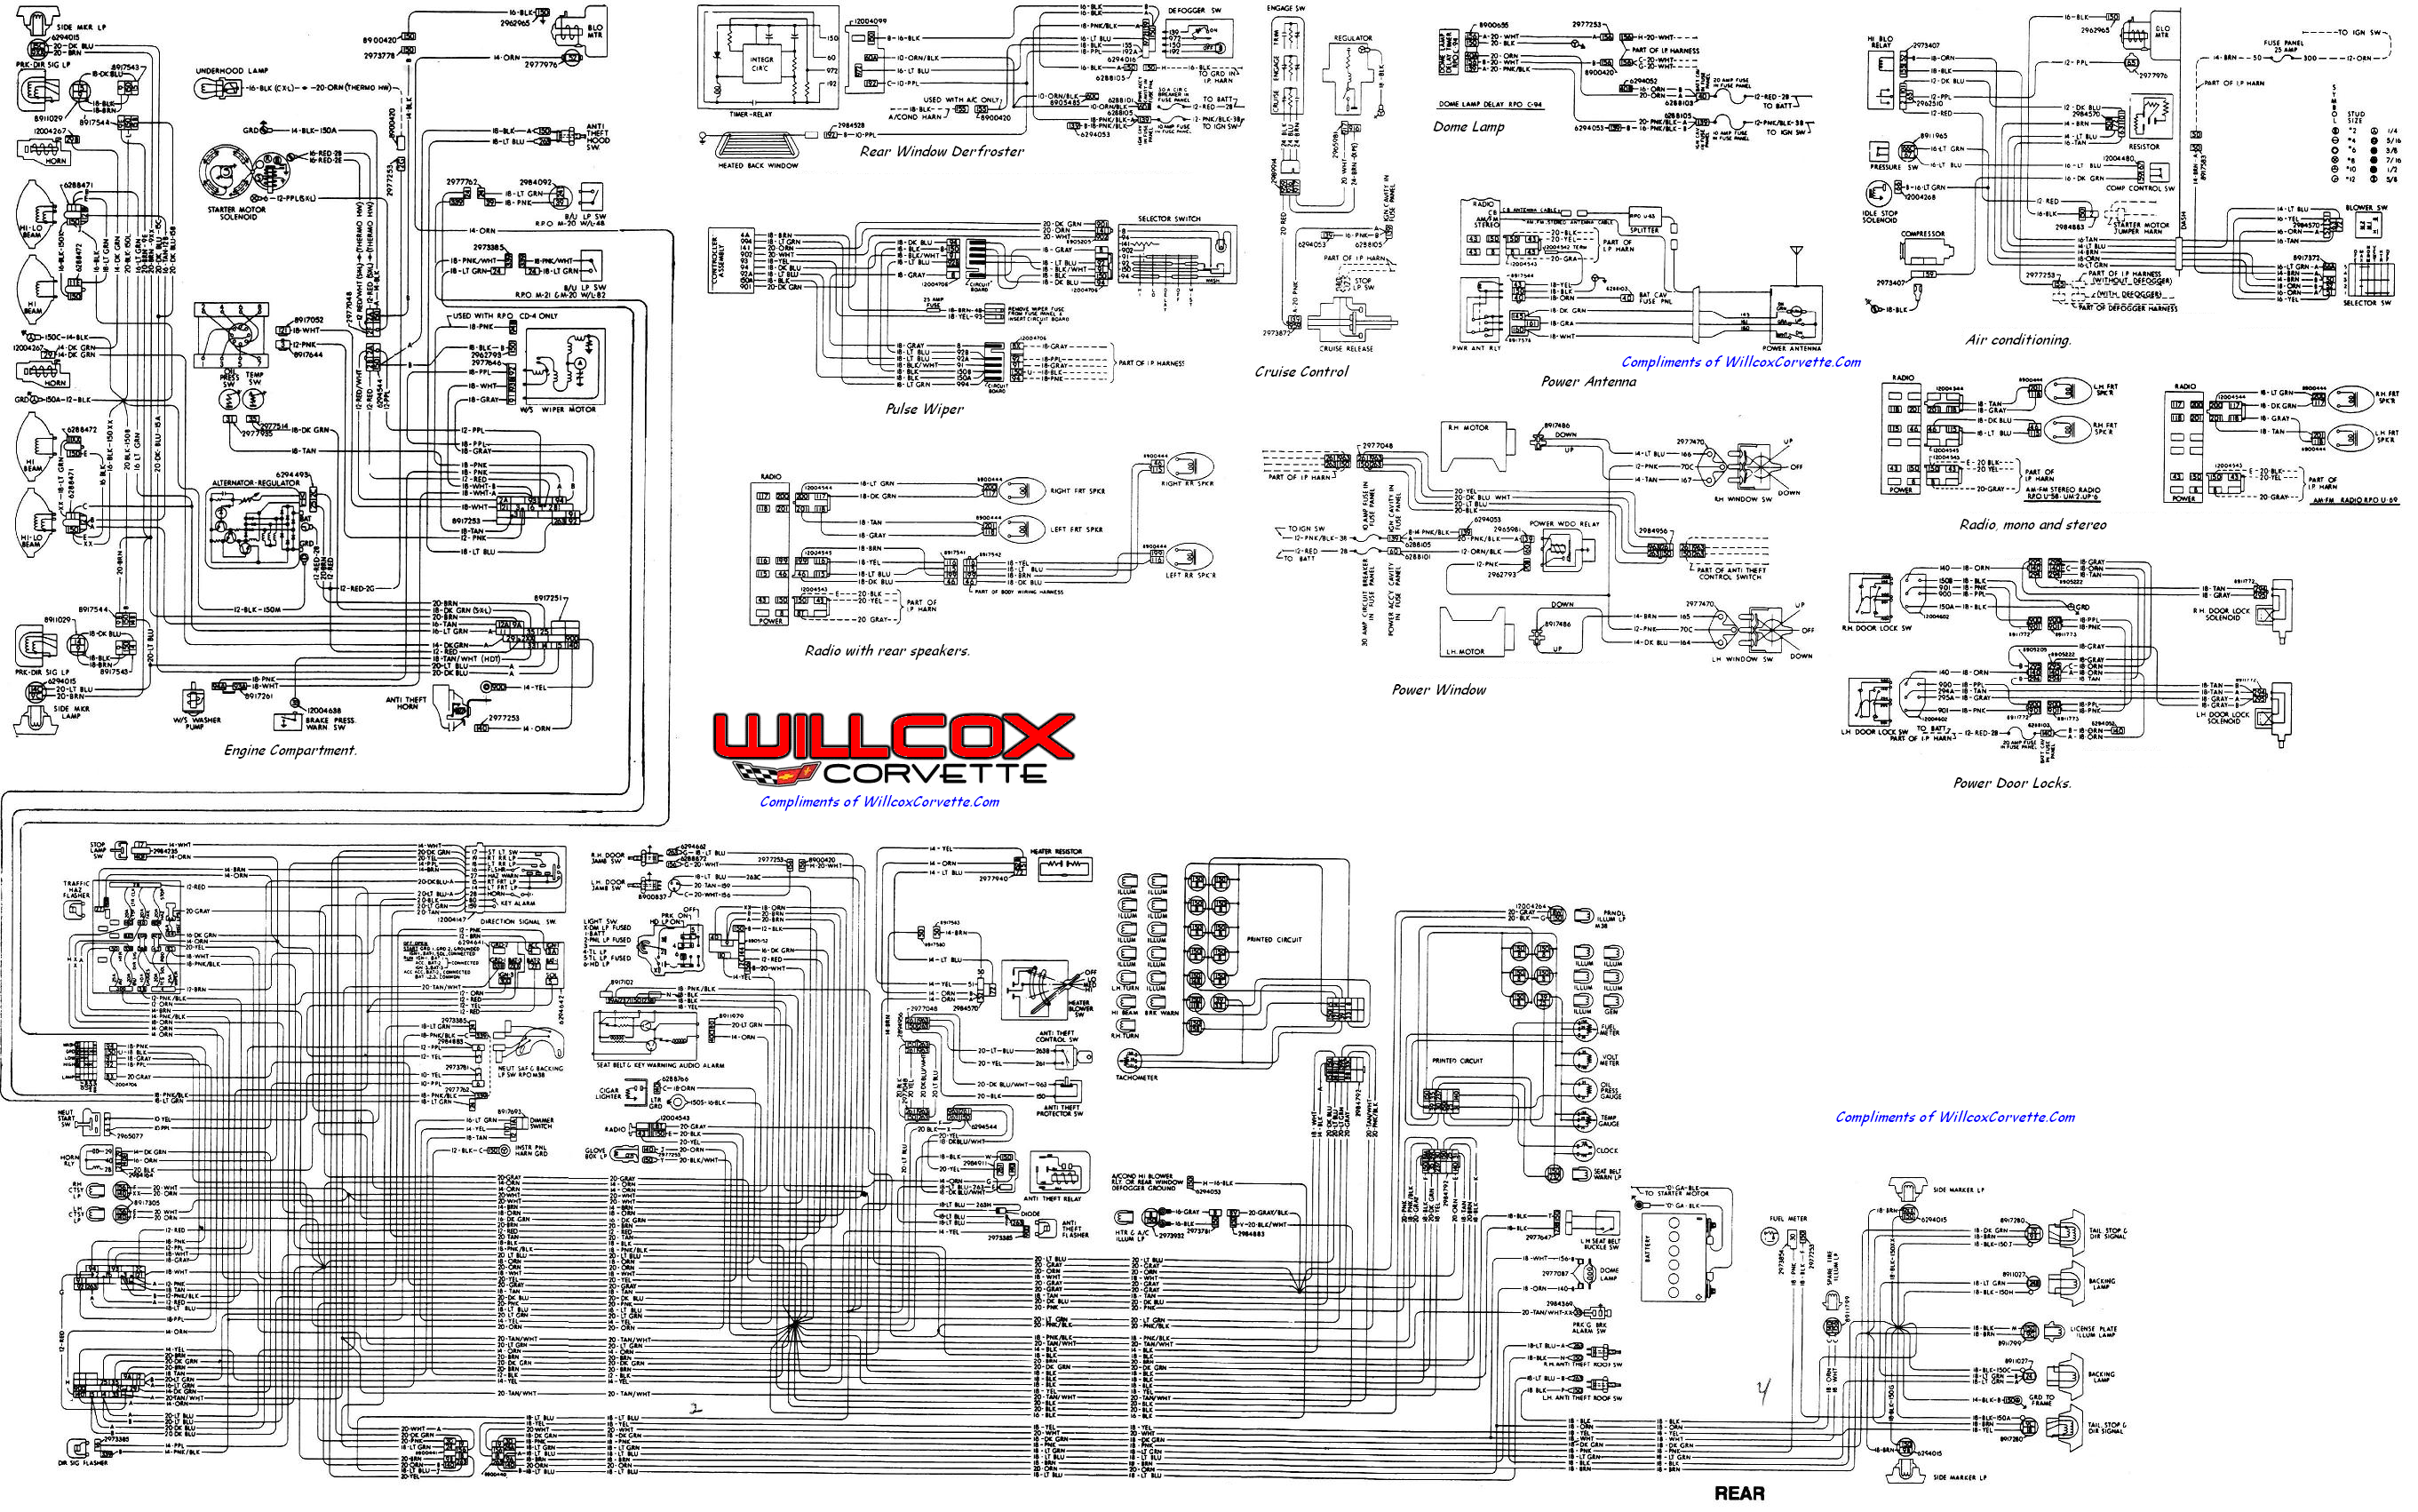 1980 vw fuse box schematics wiring diagram rh 11 4 13 jacqueline helm de